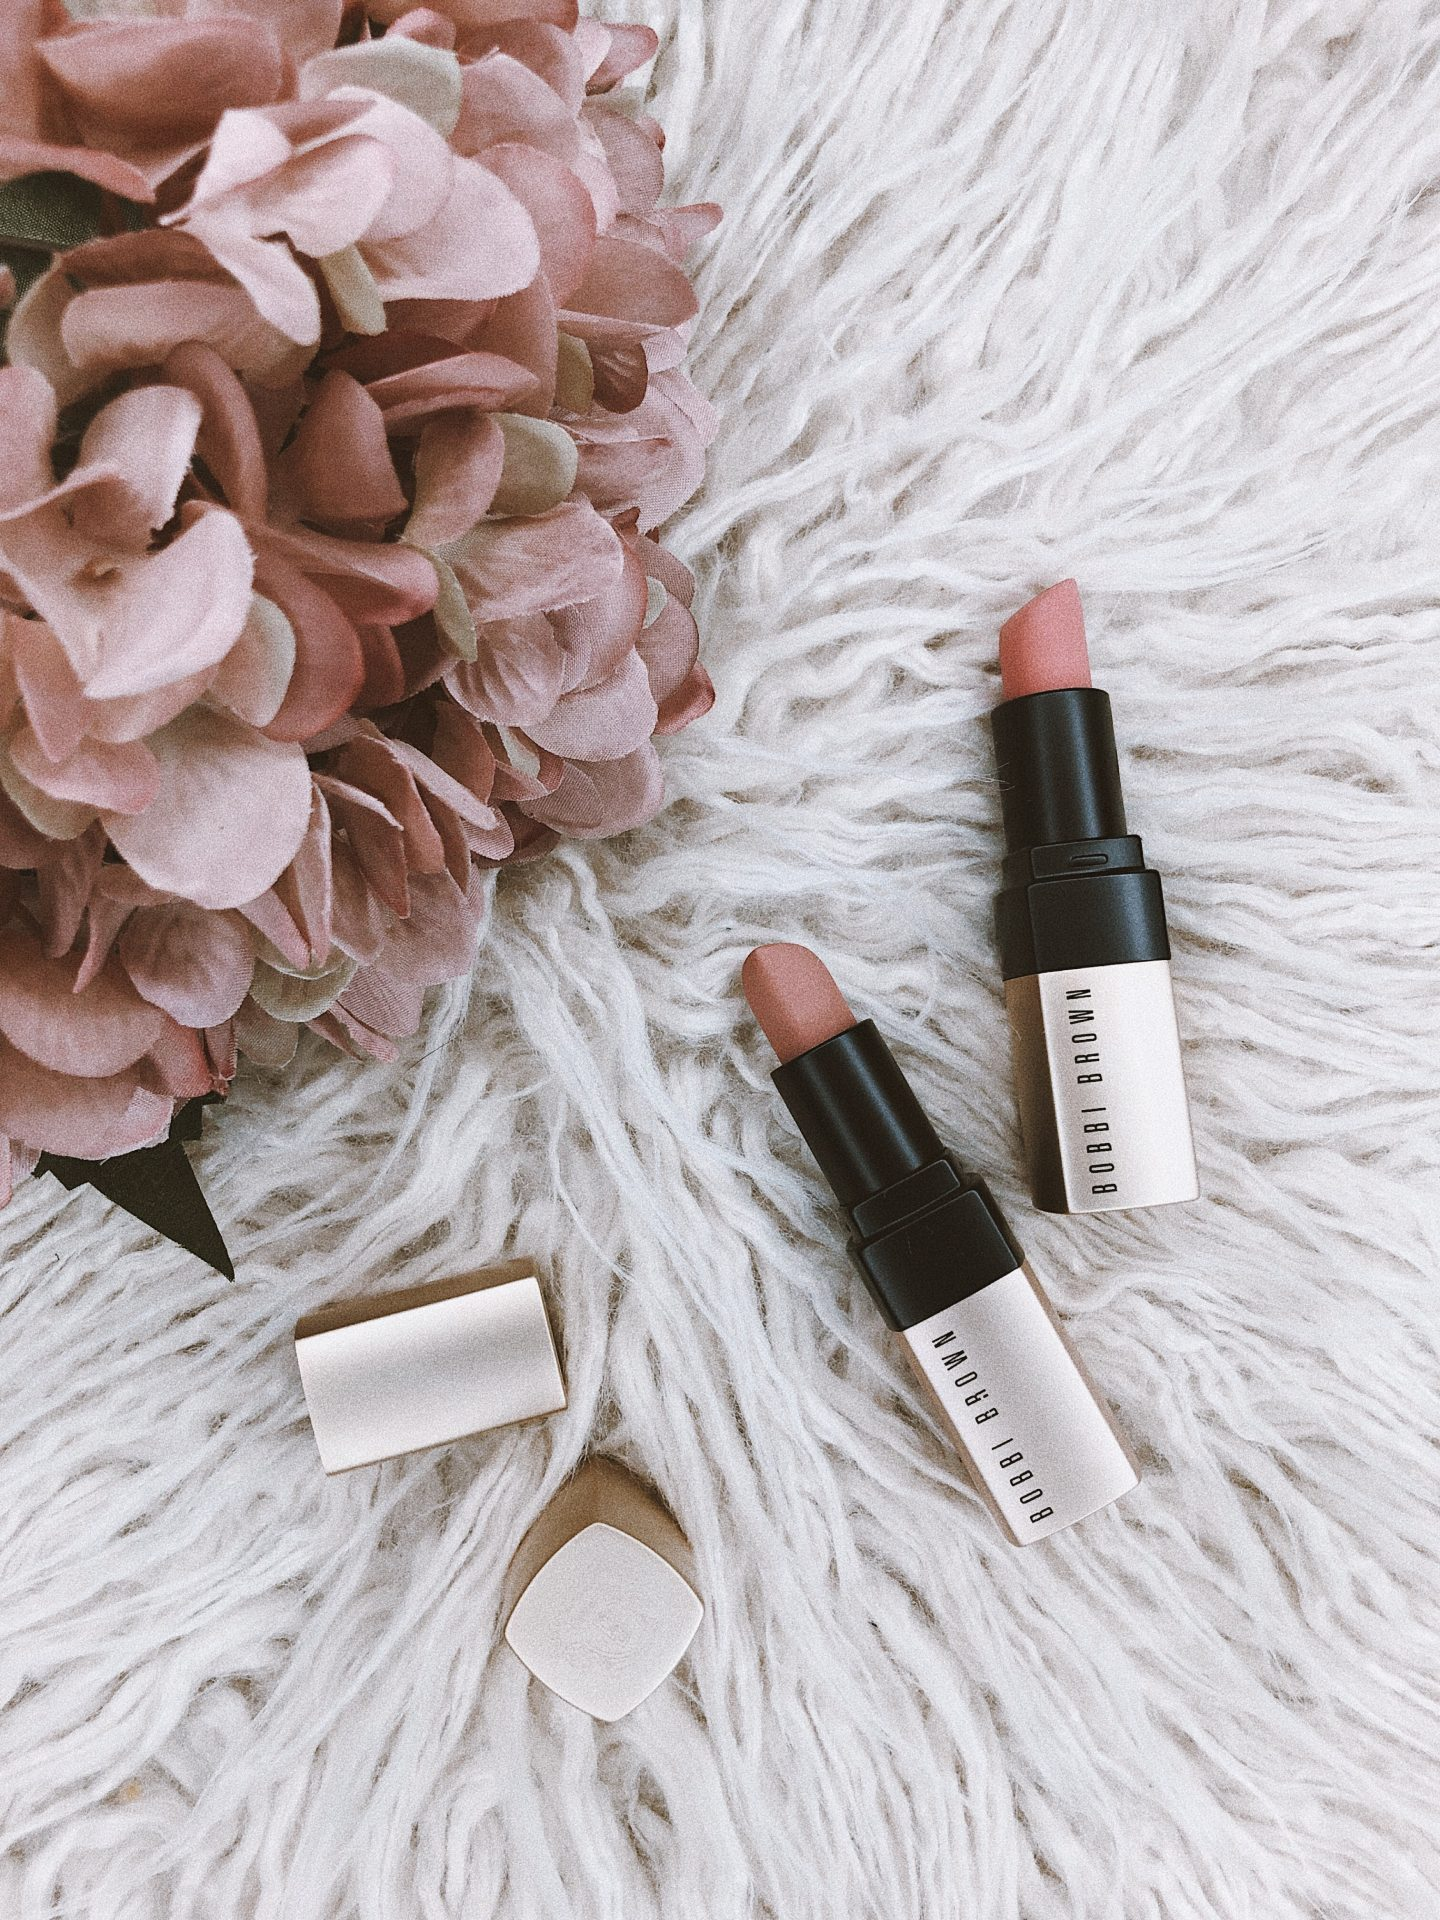 BOBBI BROWN – Your mood. Your color.